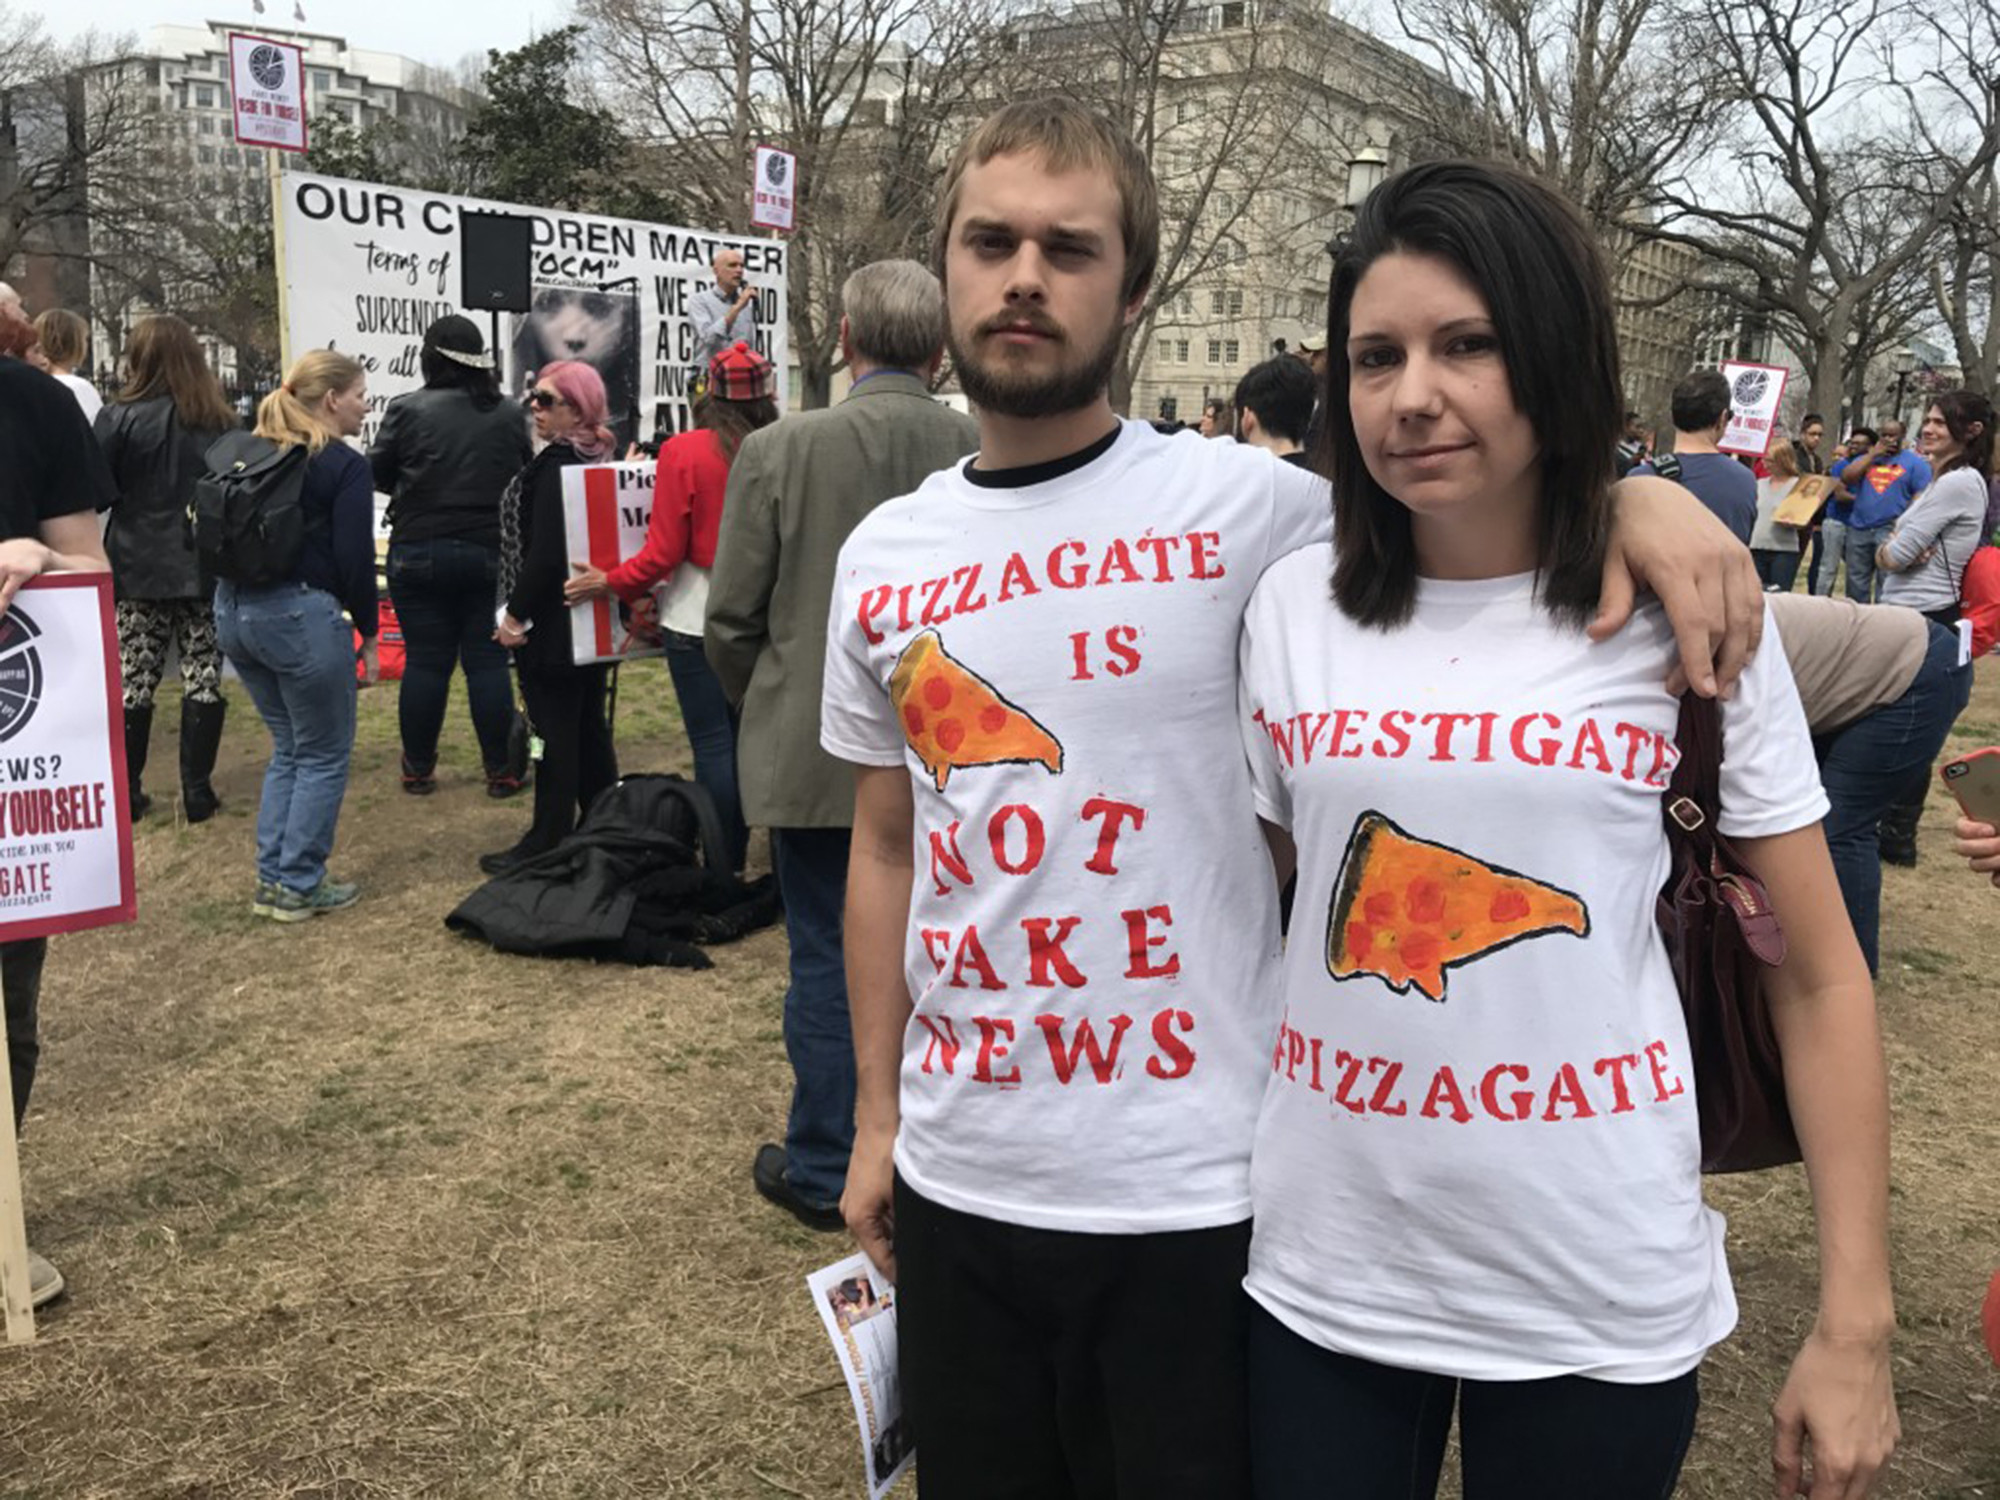 Protesters Outside White House Demand Investigation Of